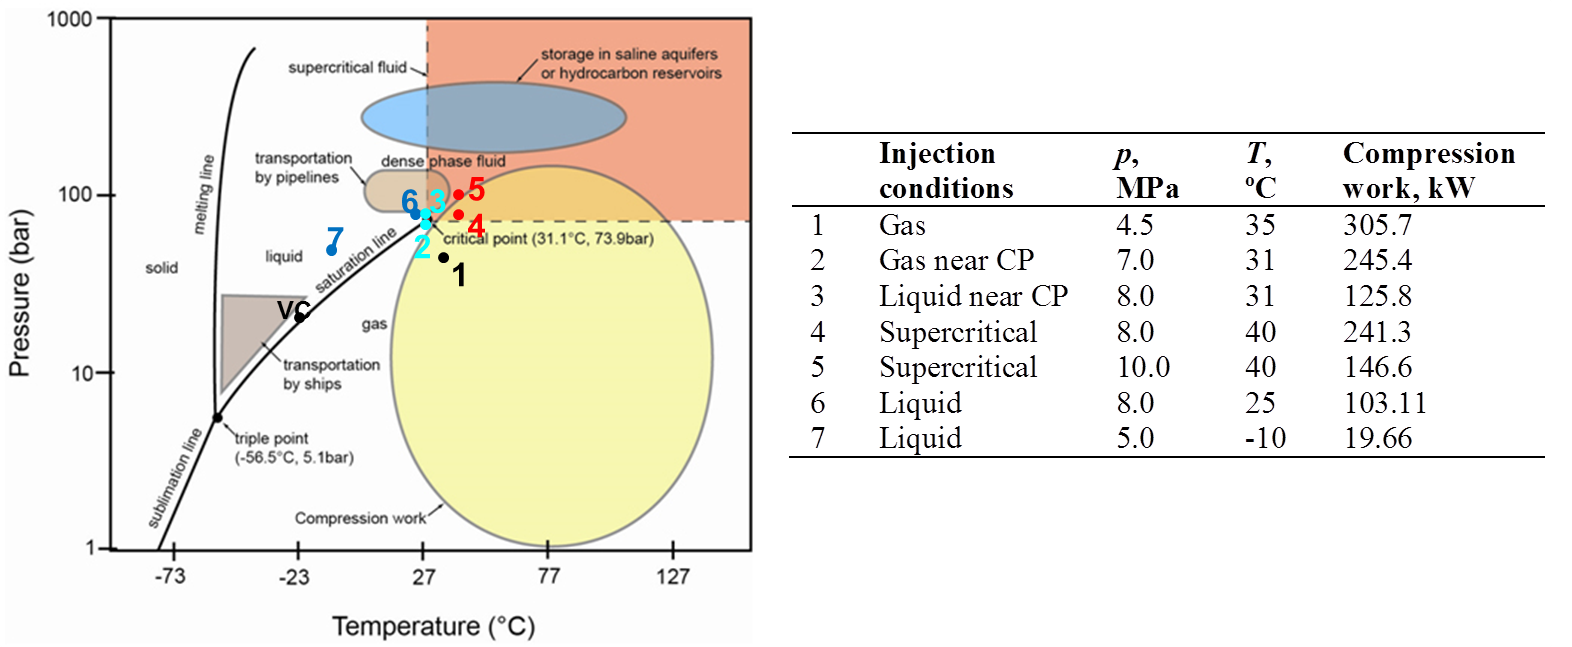 wellbore diagram program for free basic guide wiring